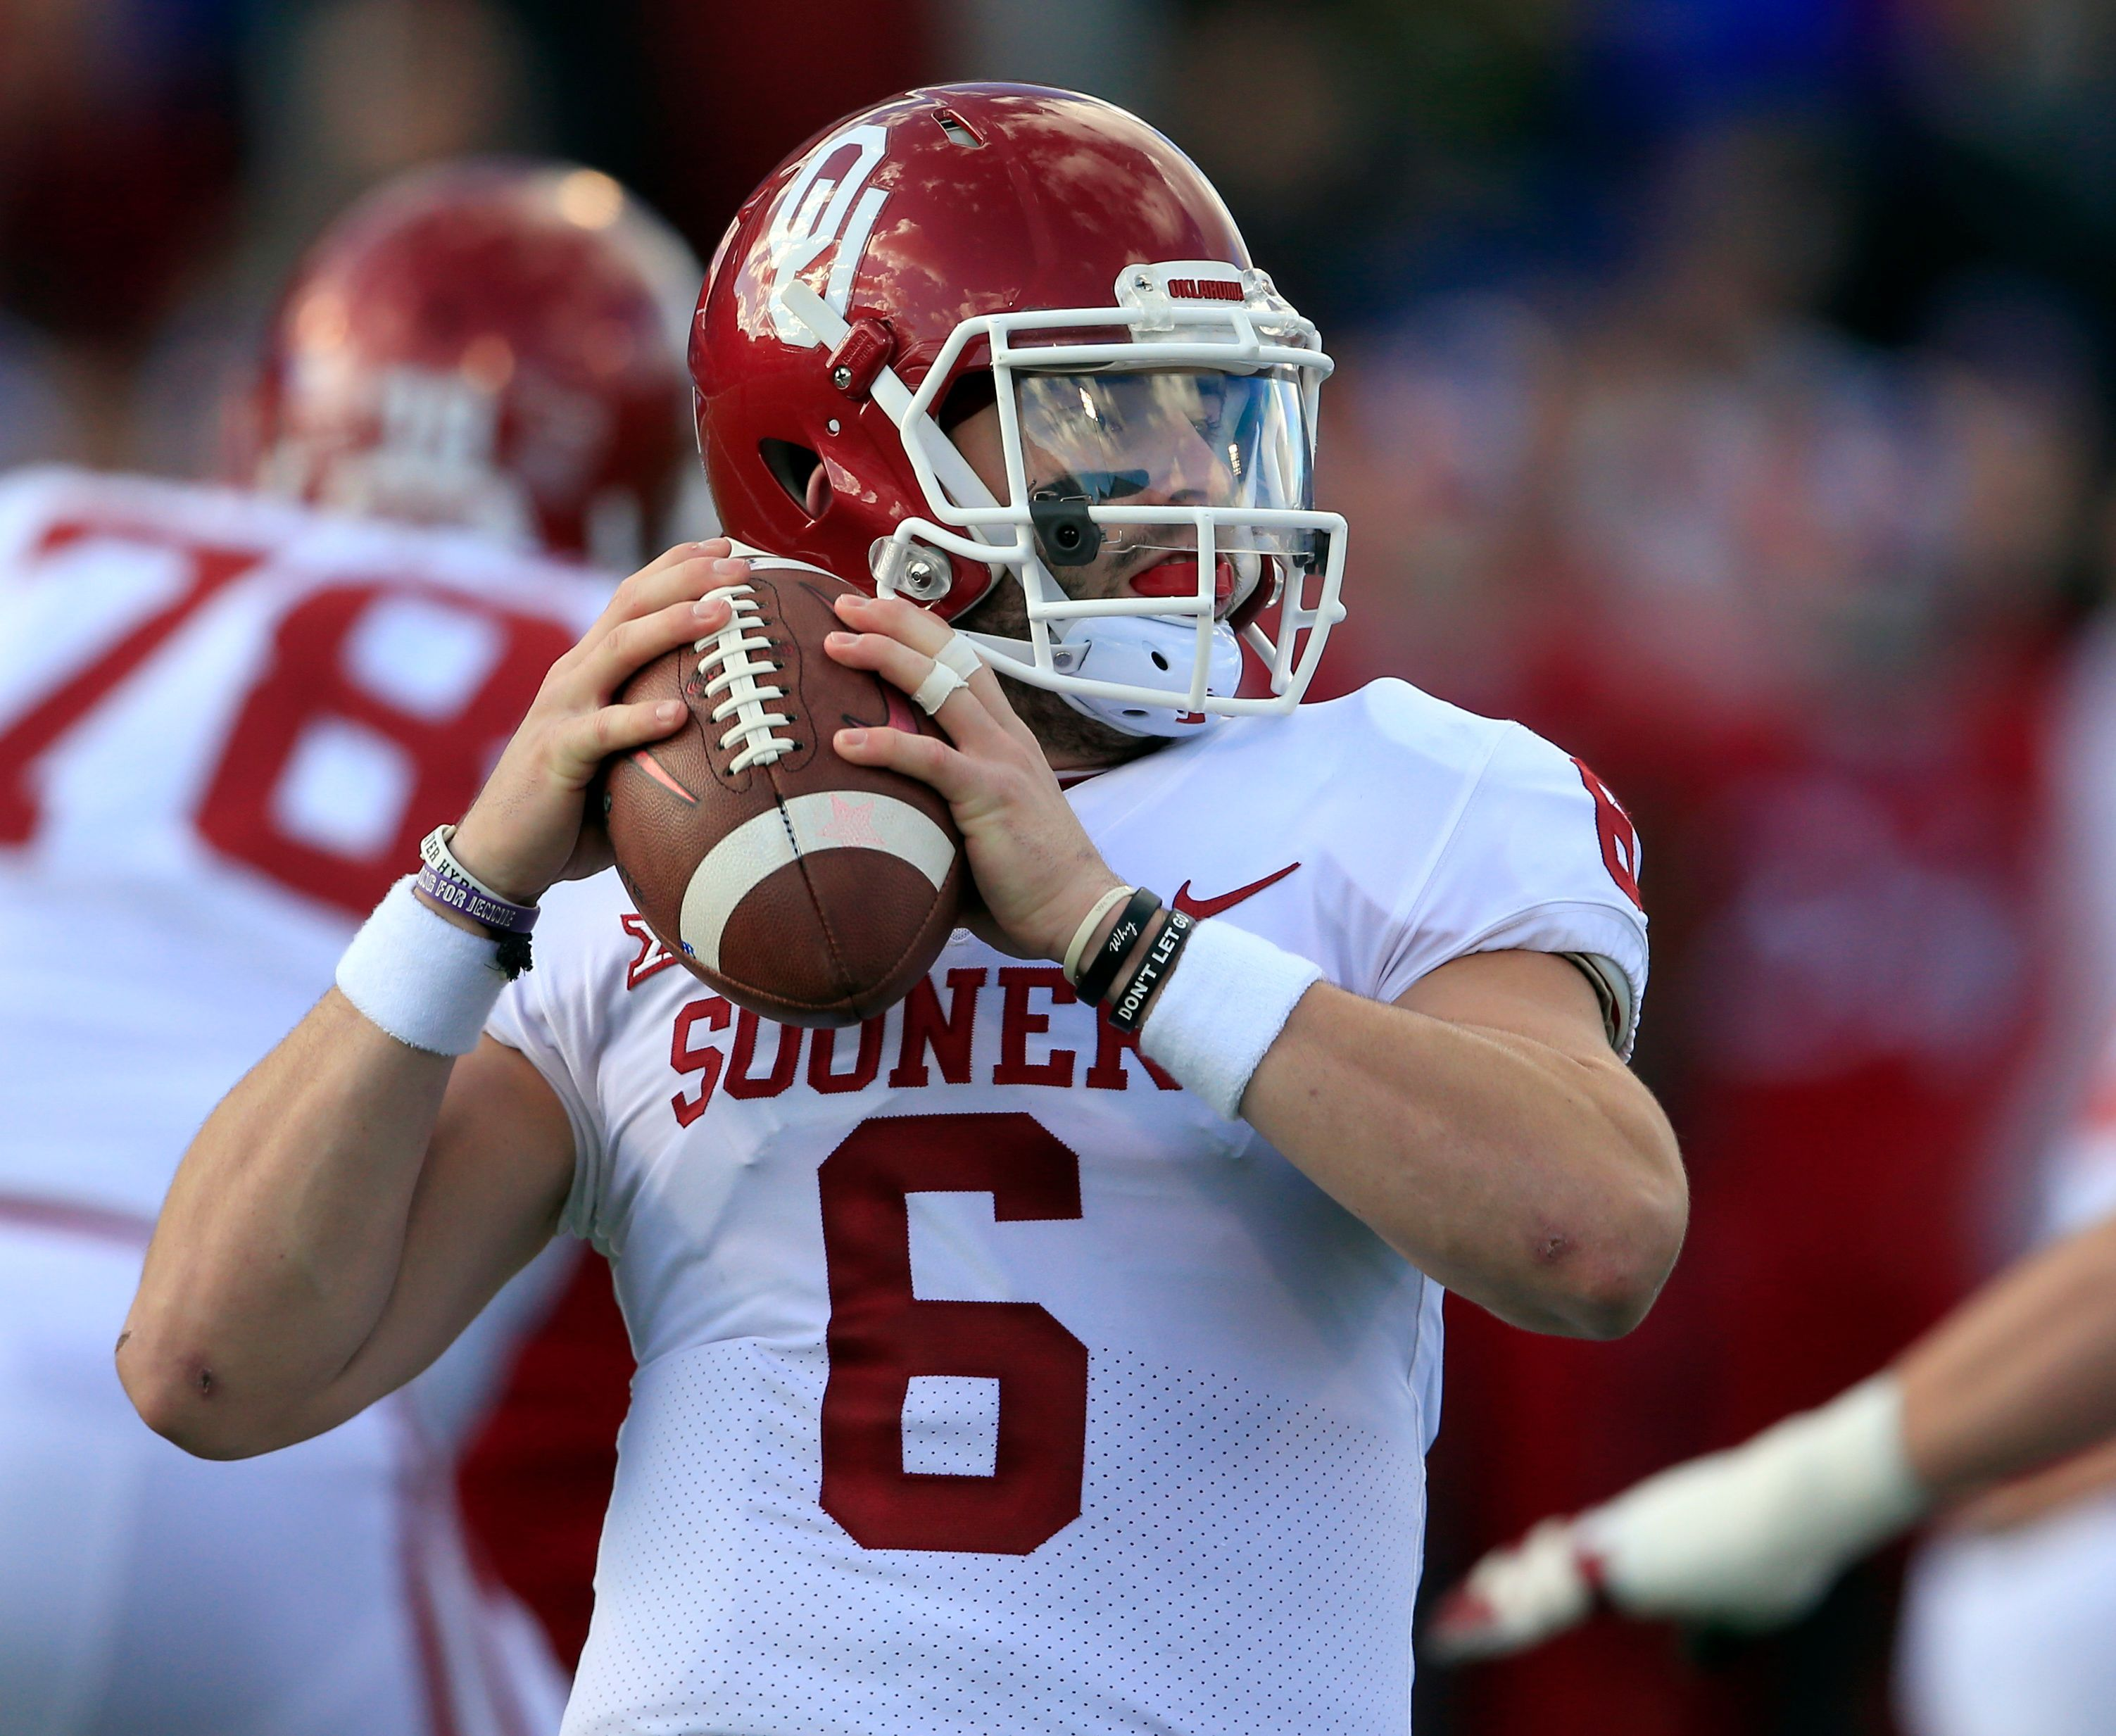 No. 3 Oklahoma in Big 12 title game, has to win for